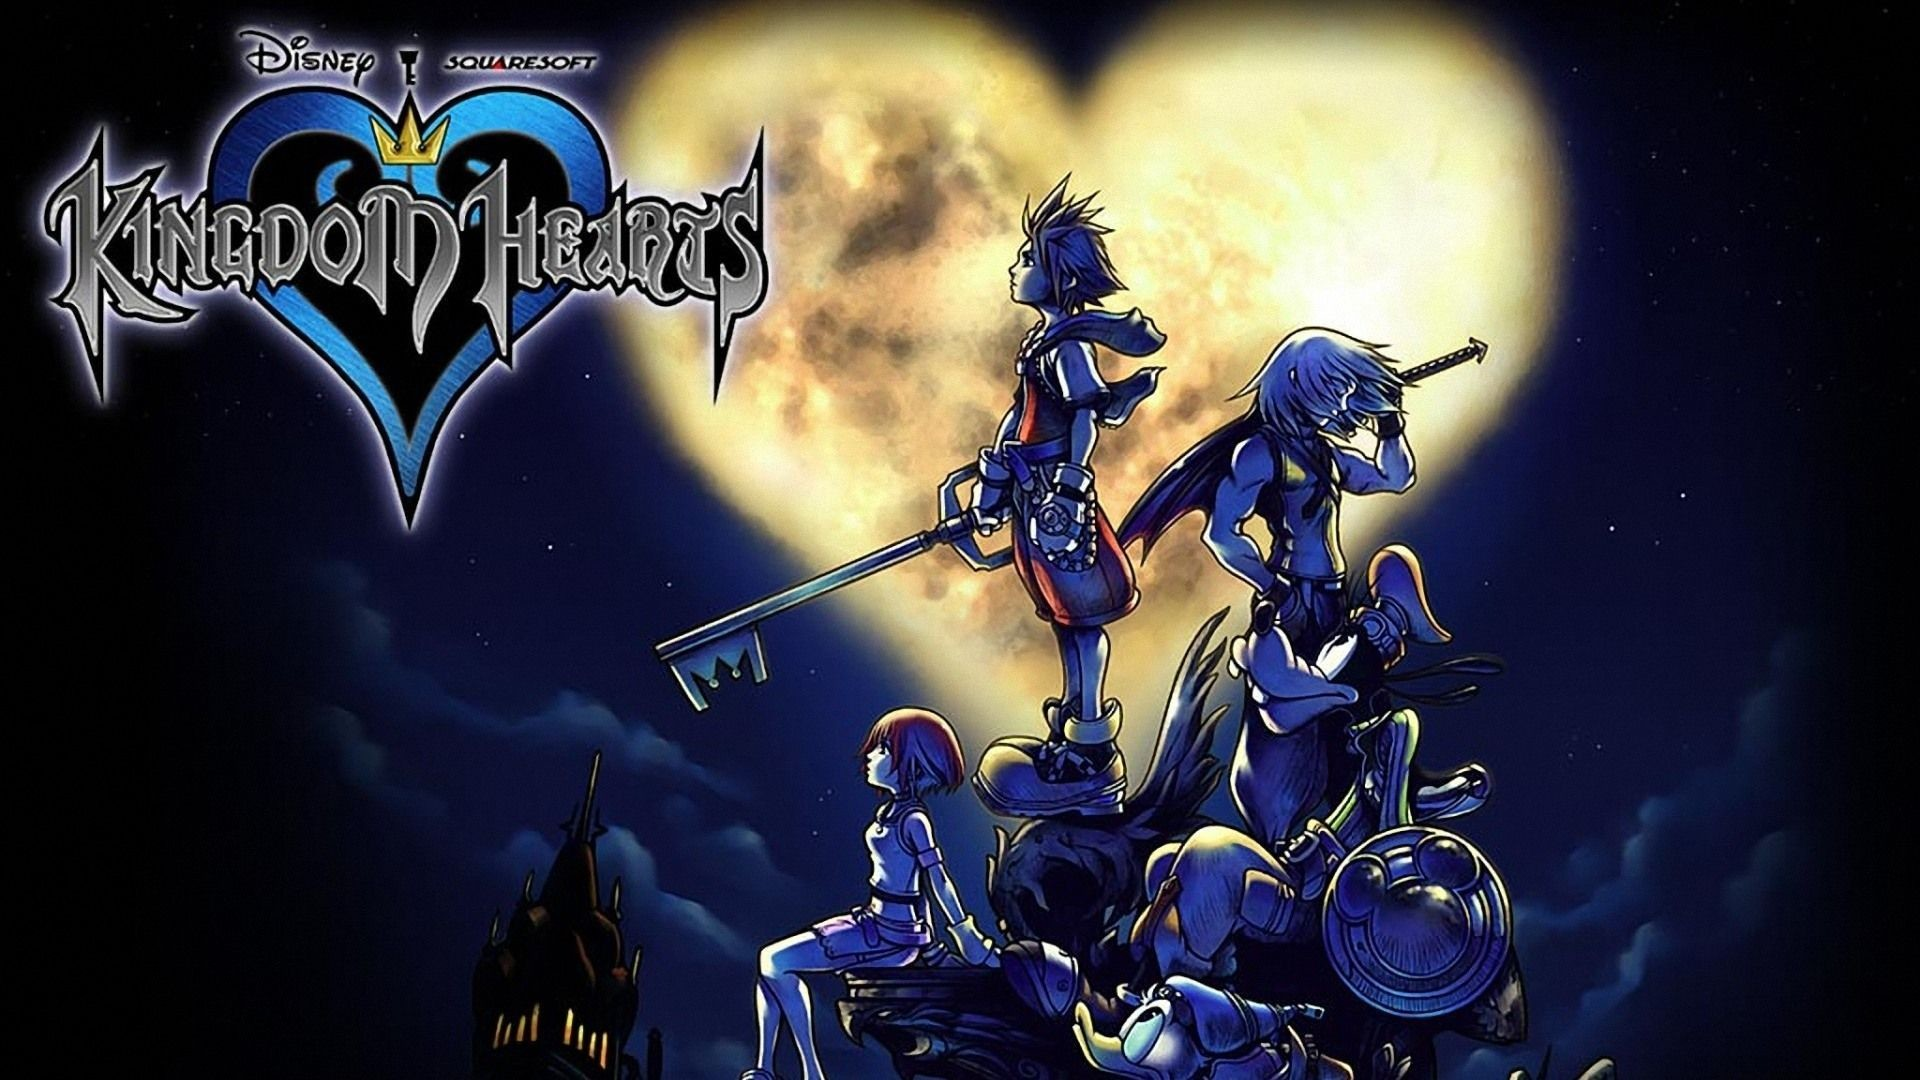 Res: 1920x1080, Kingdom Hearts Wallpapers Free